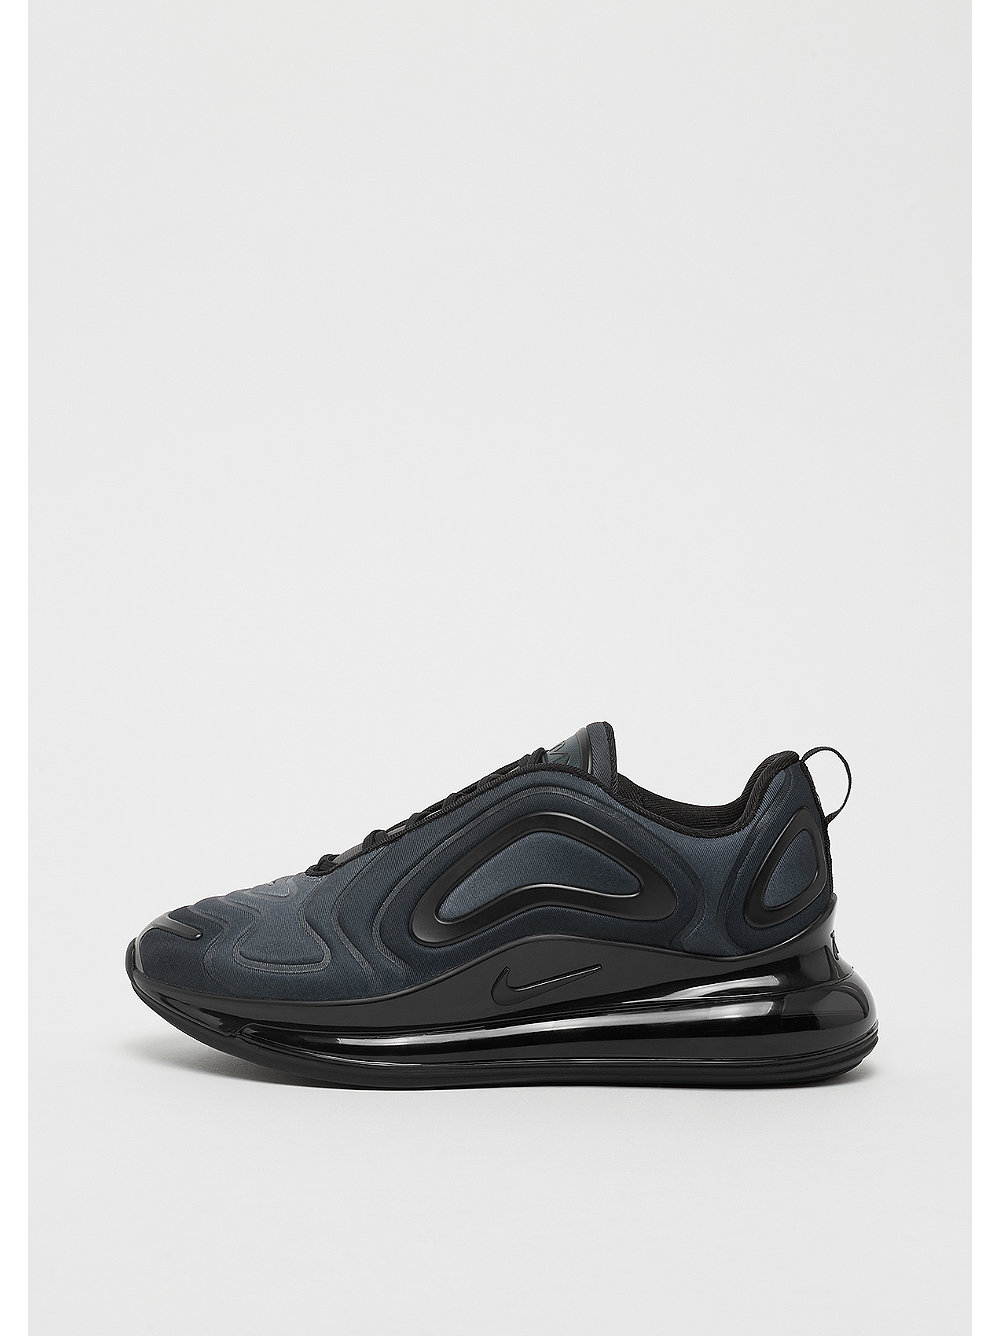 Air Max 720 (GS) blackblack anthracite